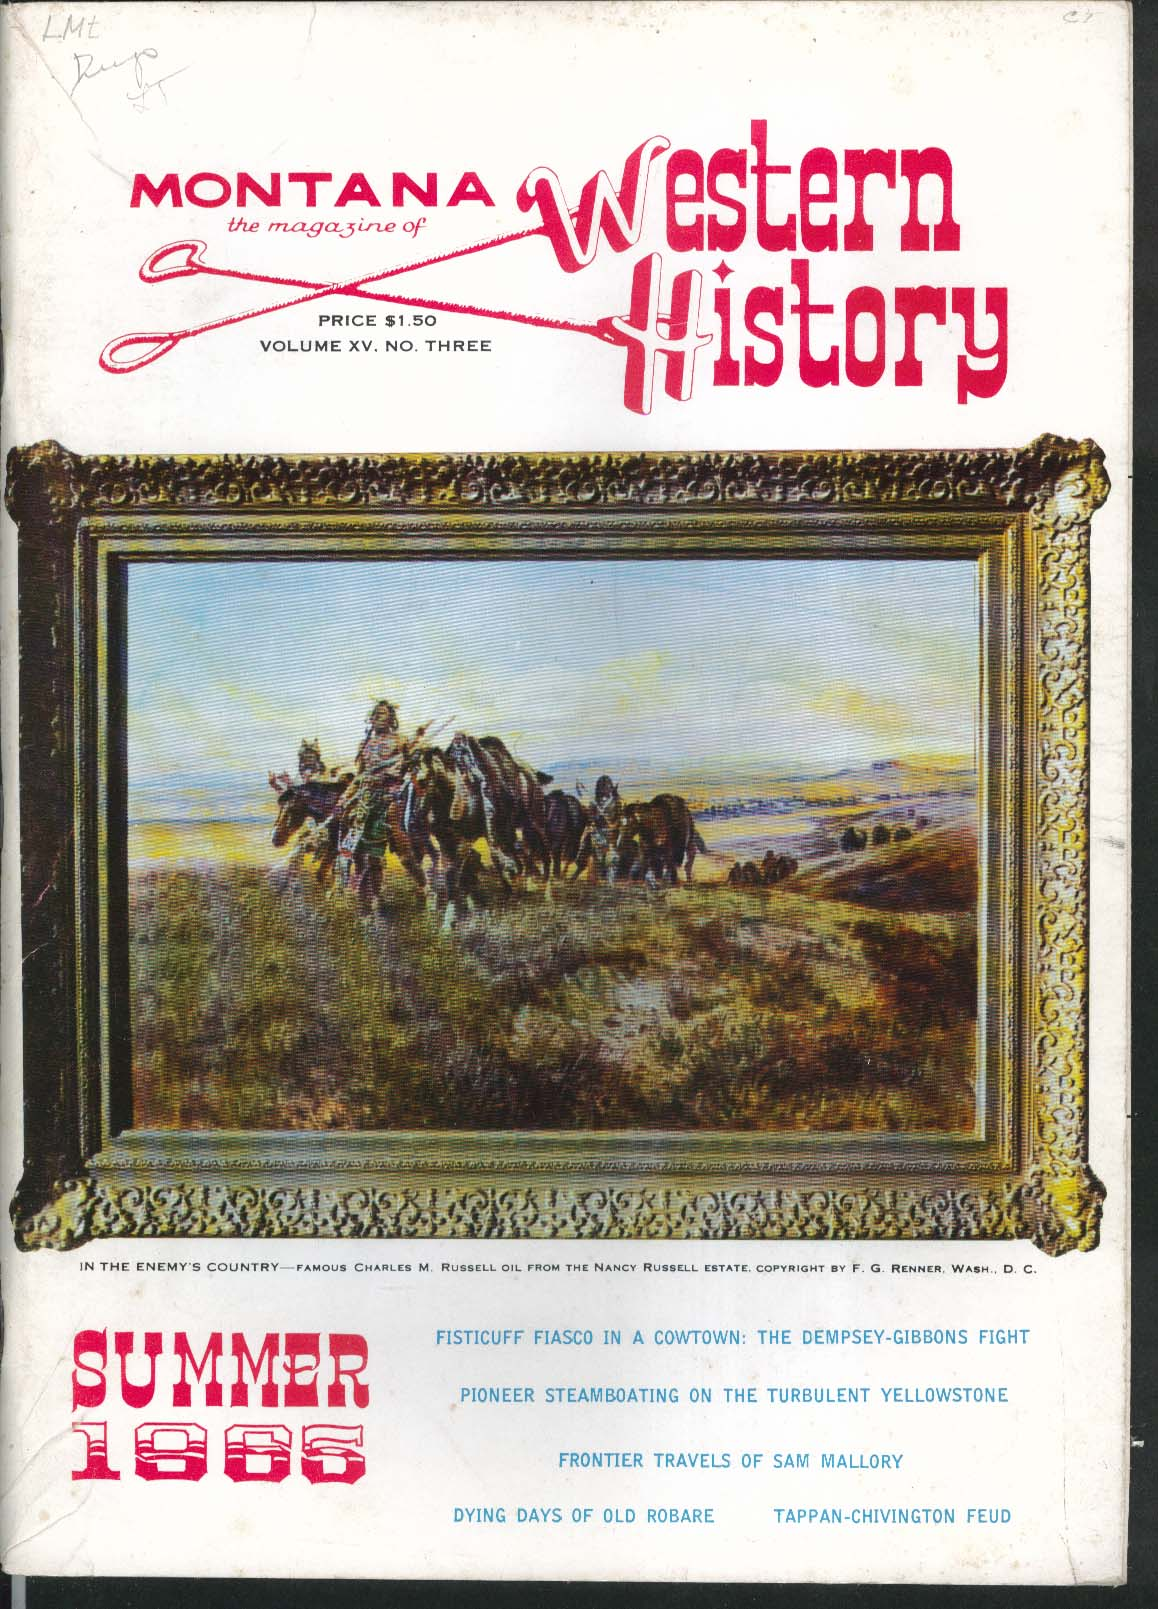 MONTANA WESTERN HISTORY Dempsey-Gibbons Fight Yellowstone Steamboats Summer 1965